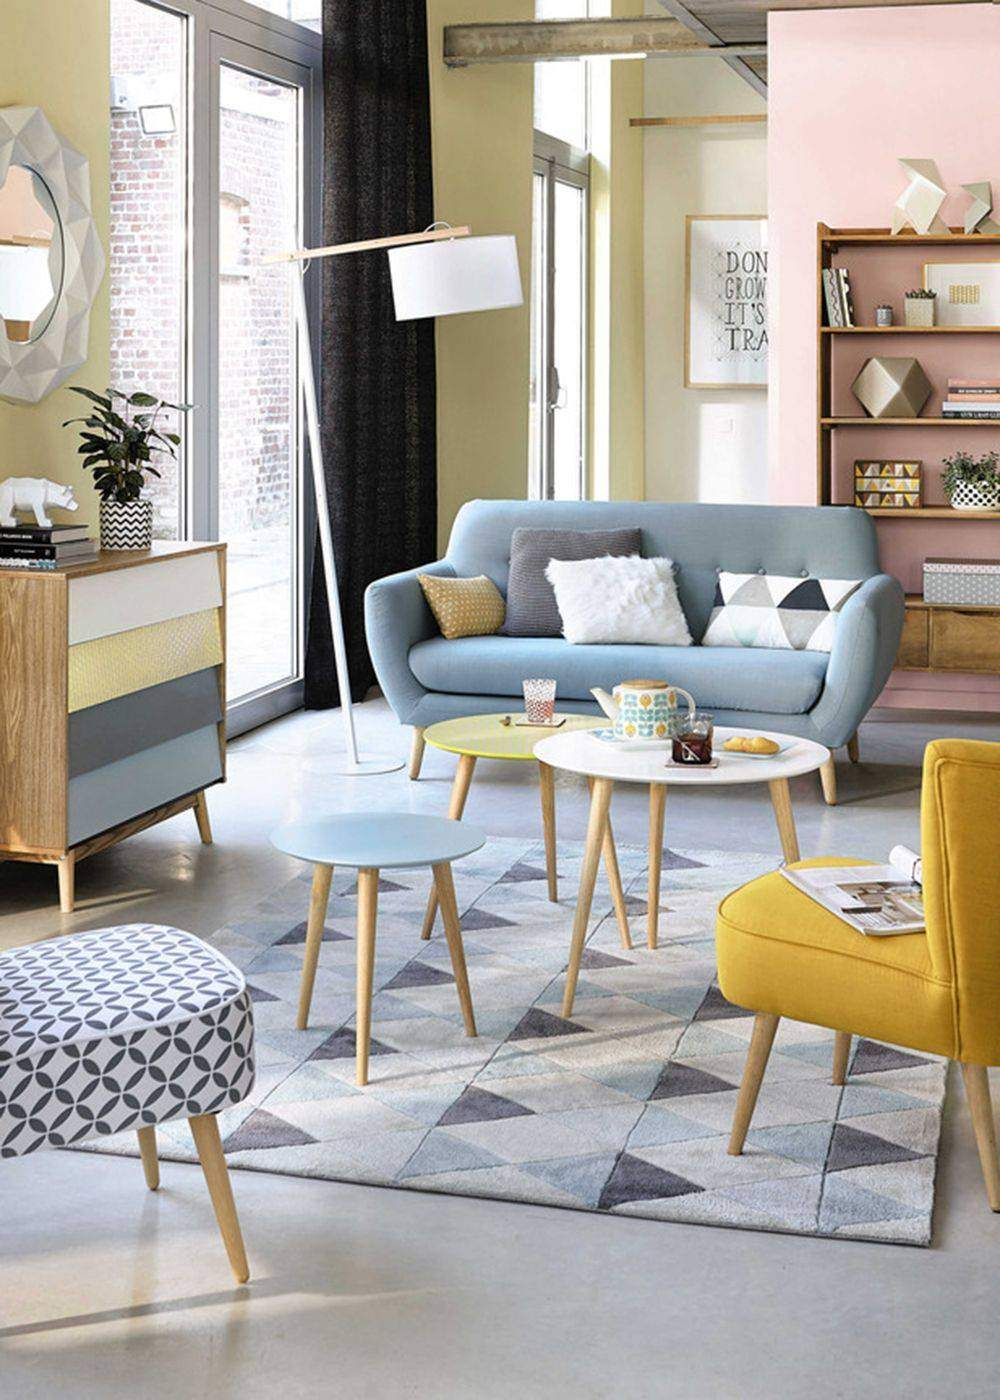 wohnzimmer lampe industrial style einzigartig how to style a coffee table in your living room decor of wohnzimmer lampe industrial style